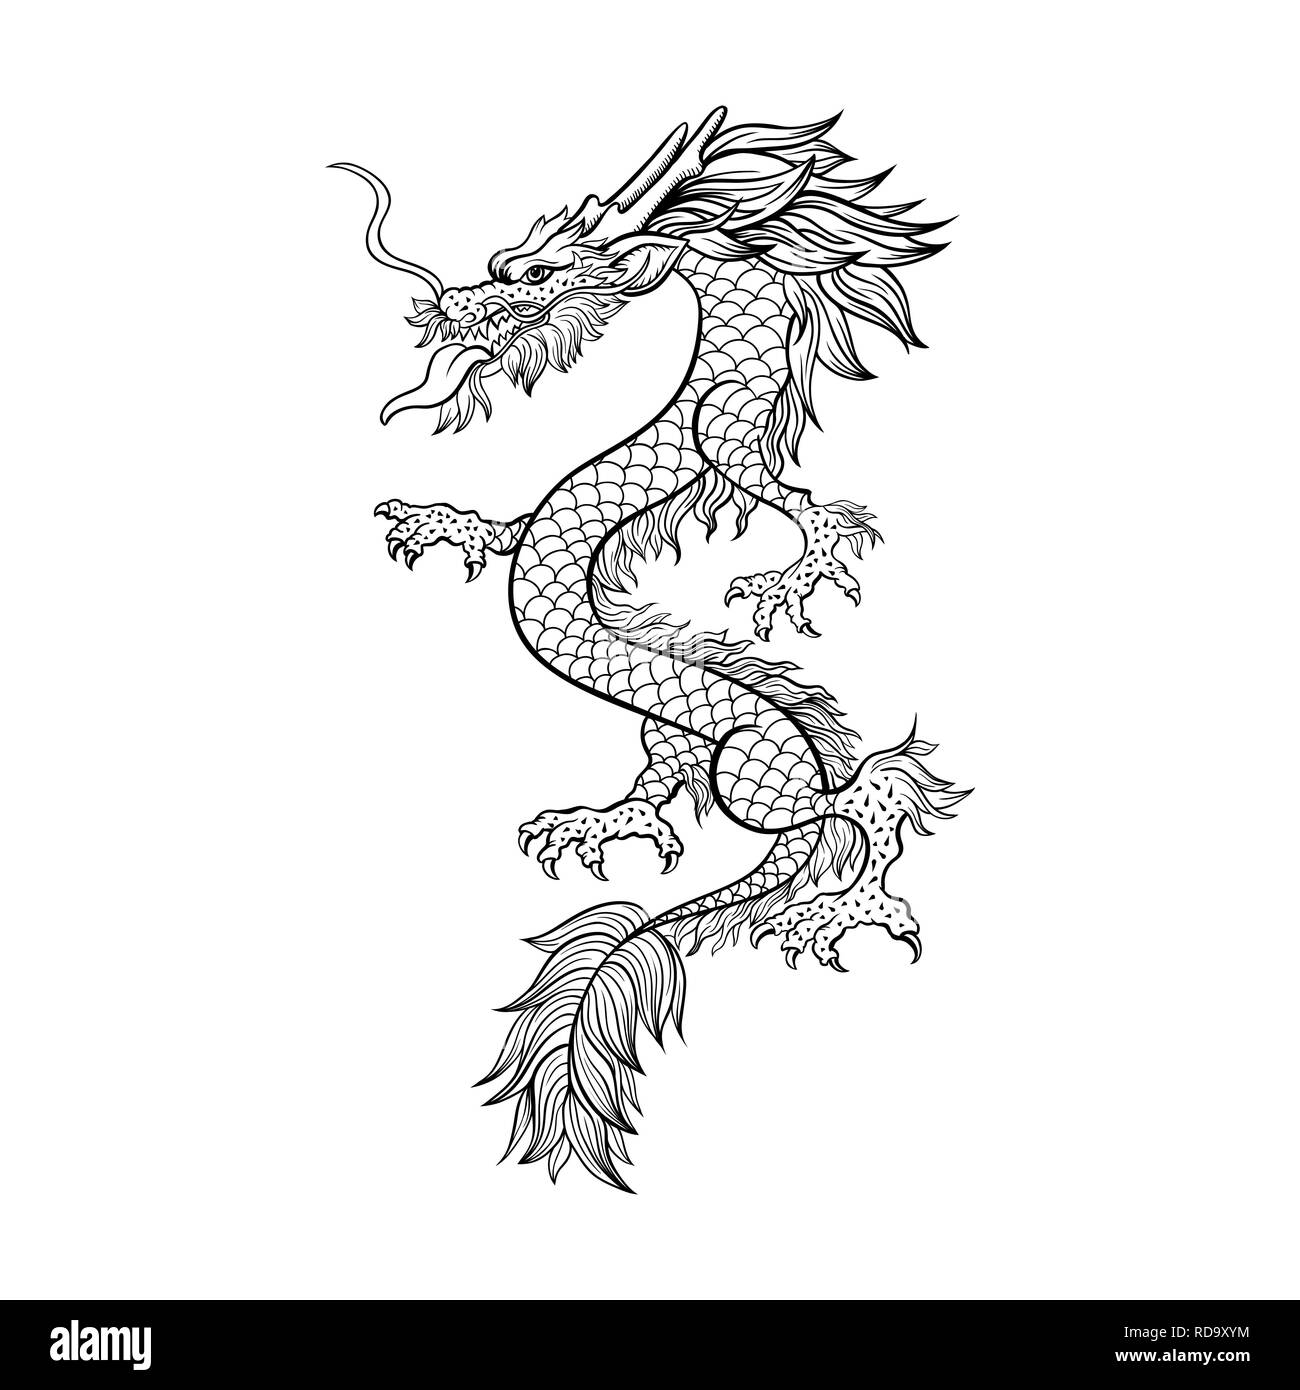 Chinese dragon hand drawn vector illustration. Mythical creature ink pen sketch. Black and white clipart. Serpent freehand drawing. Isolated monochrome mythic design element. Chinese new year poster - Stock Image